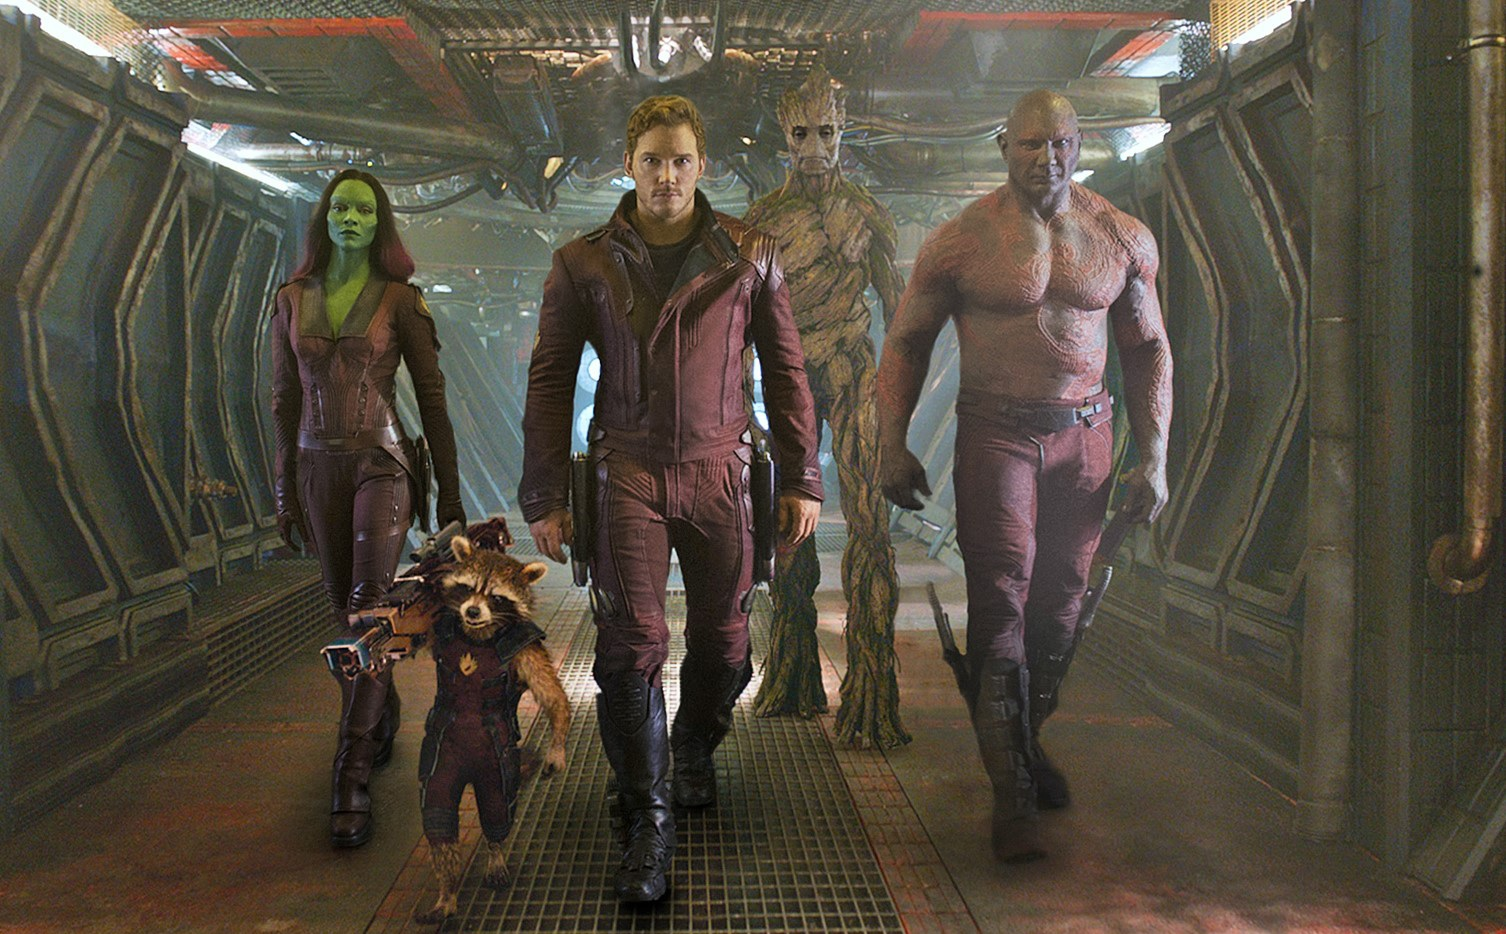 20. Guardians of the Galaxy